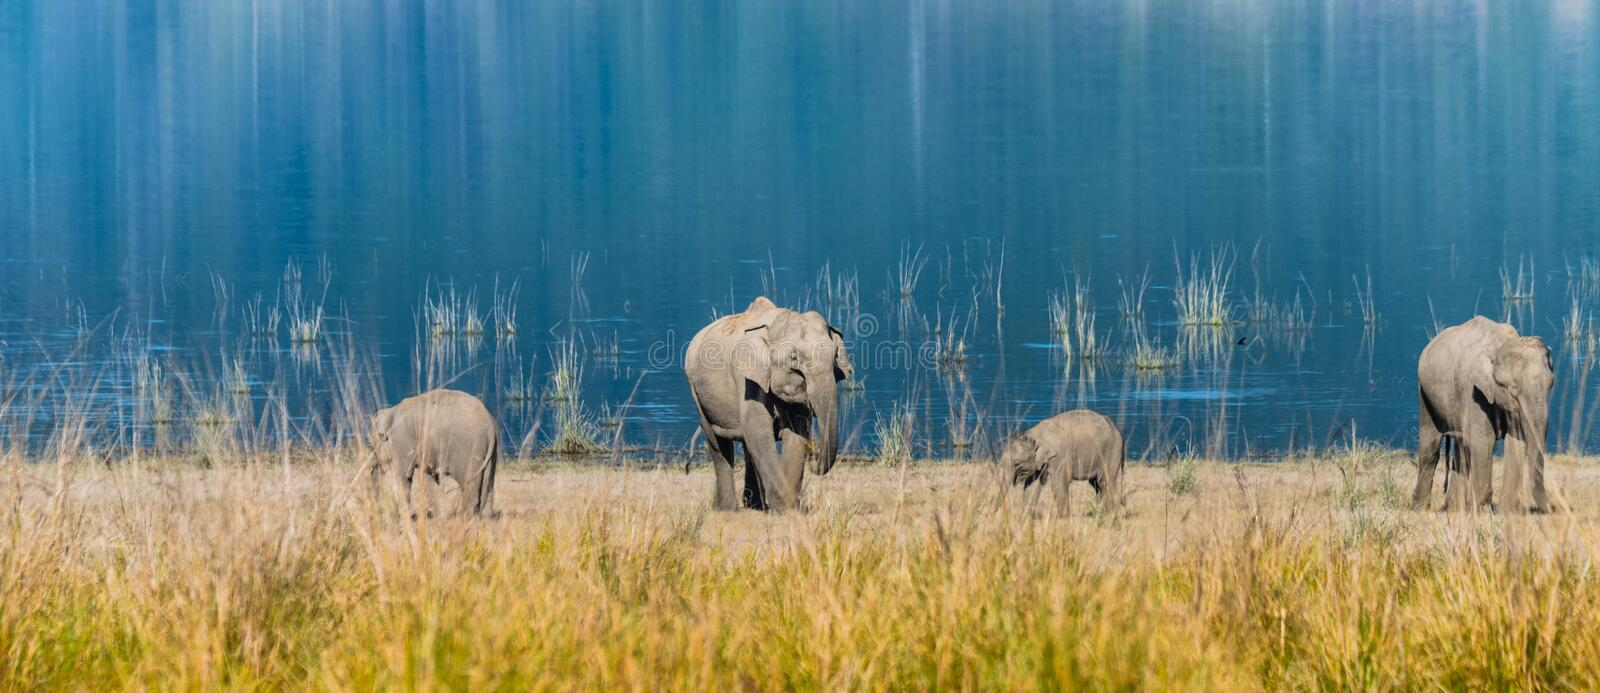 Elephant family at Grassland of Jim Corbett. Mother elephants accompany with her calf grazing grass at Jim Corbett National Park royalty free stock images